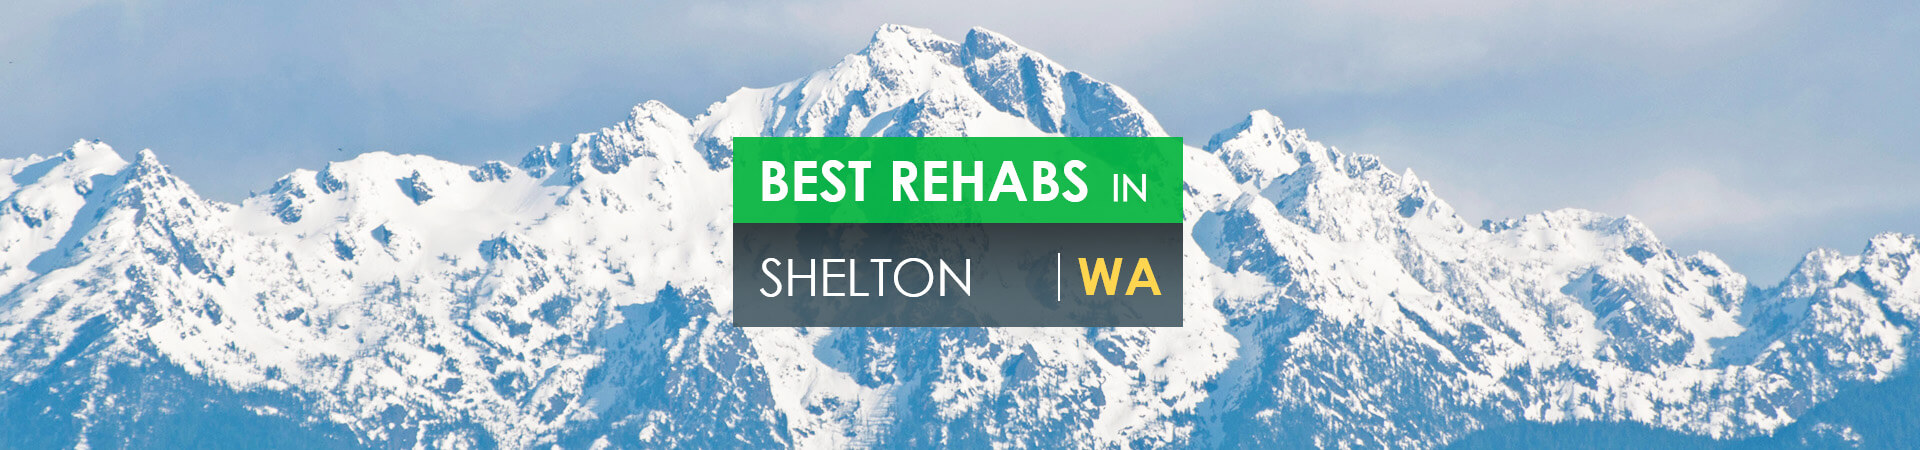 Best rehabs in Shelton, WA